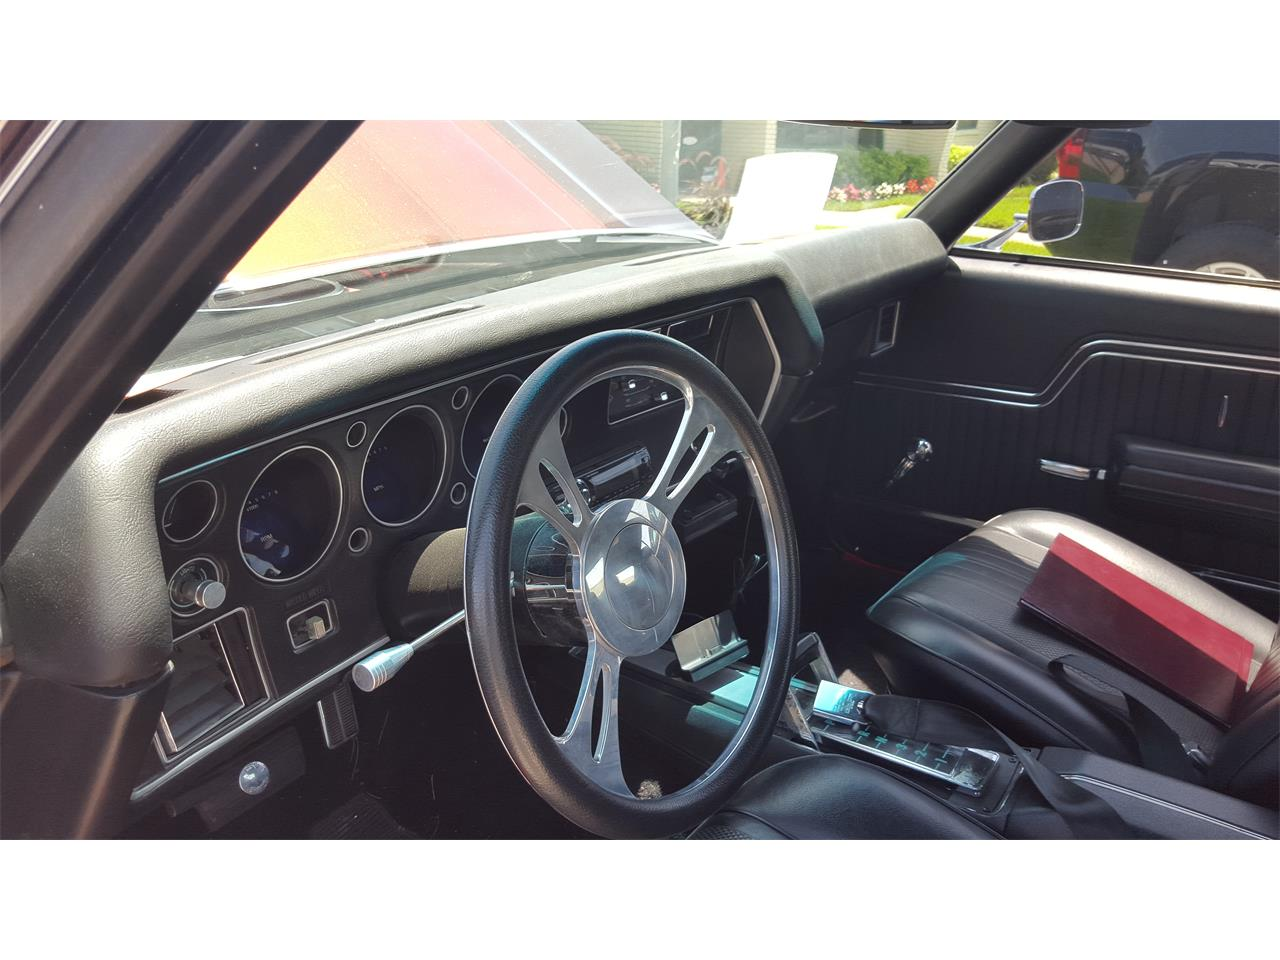 Large Picture of 1970 Chevrolet Chevelle located in Virginia - $35,000.00 Offered by a Private Seller - QH1I